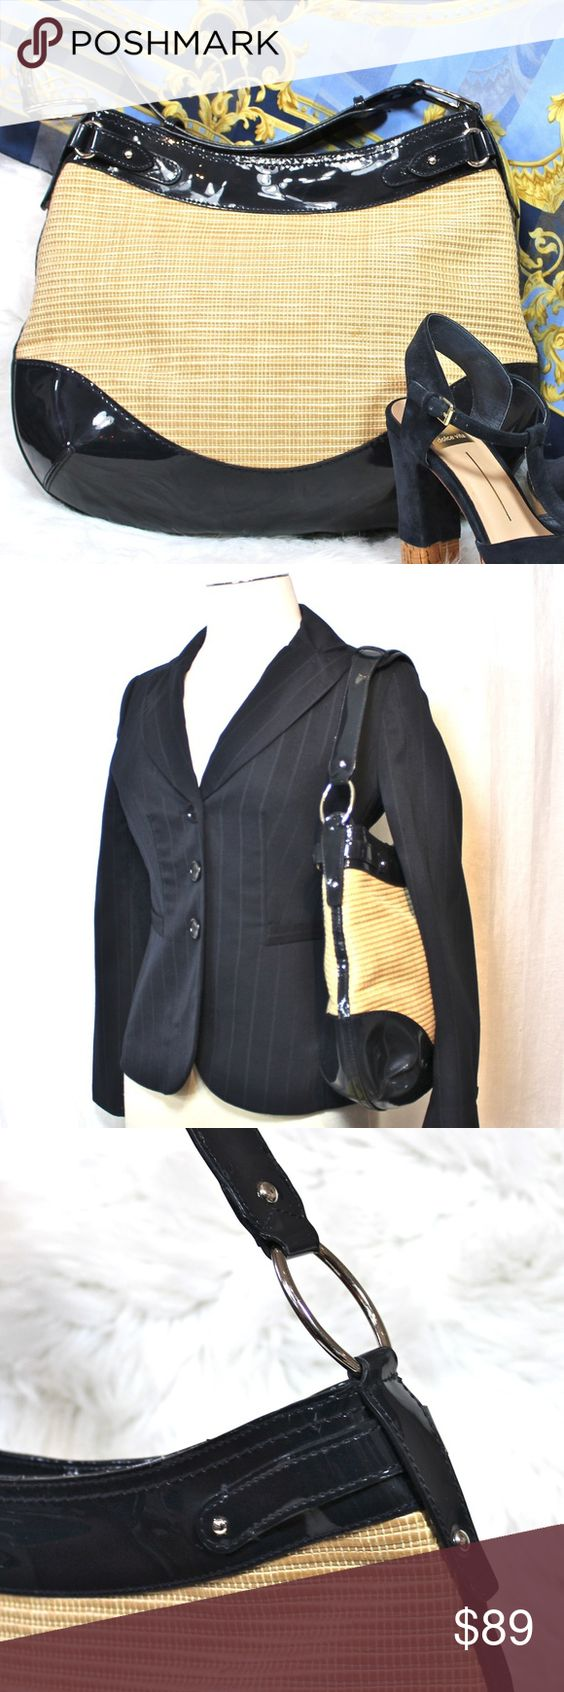 Used 1x**Ann Taylor Straw/Leather Bag ?Used Once! Fantastic condition!Beautiful Ann Taylor Navy Straw Patent Leather Bag  Lovely horizontal straw weave on main body. SIlver grommets & hardware. Sidewall zippered pocket, 2 open pockets keep things orga